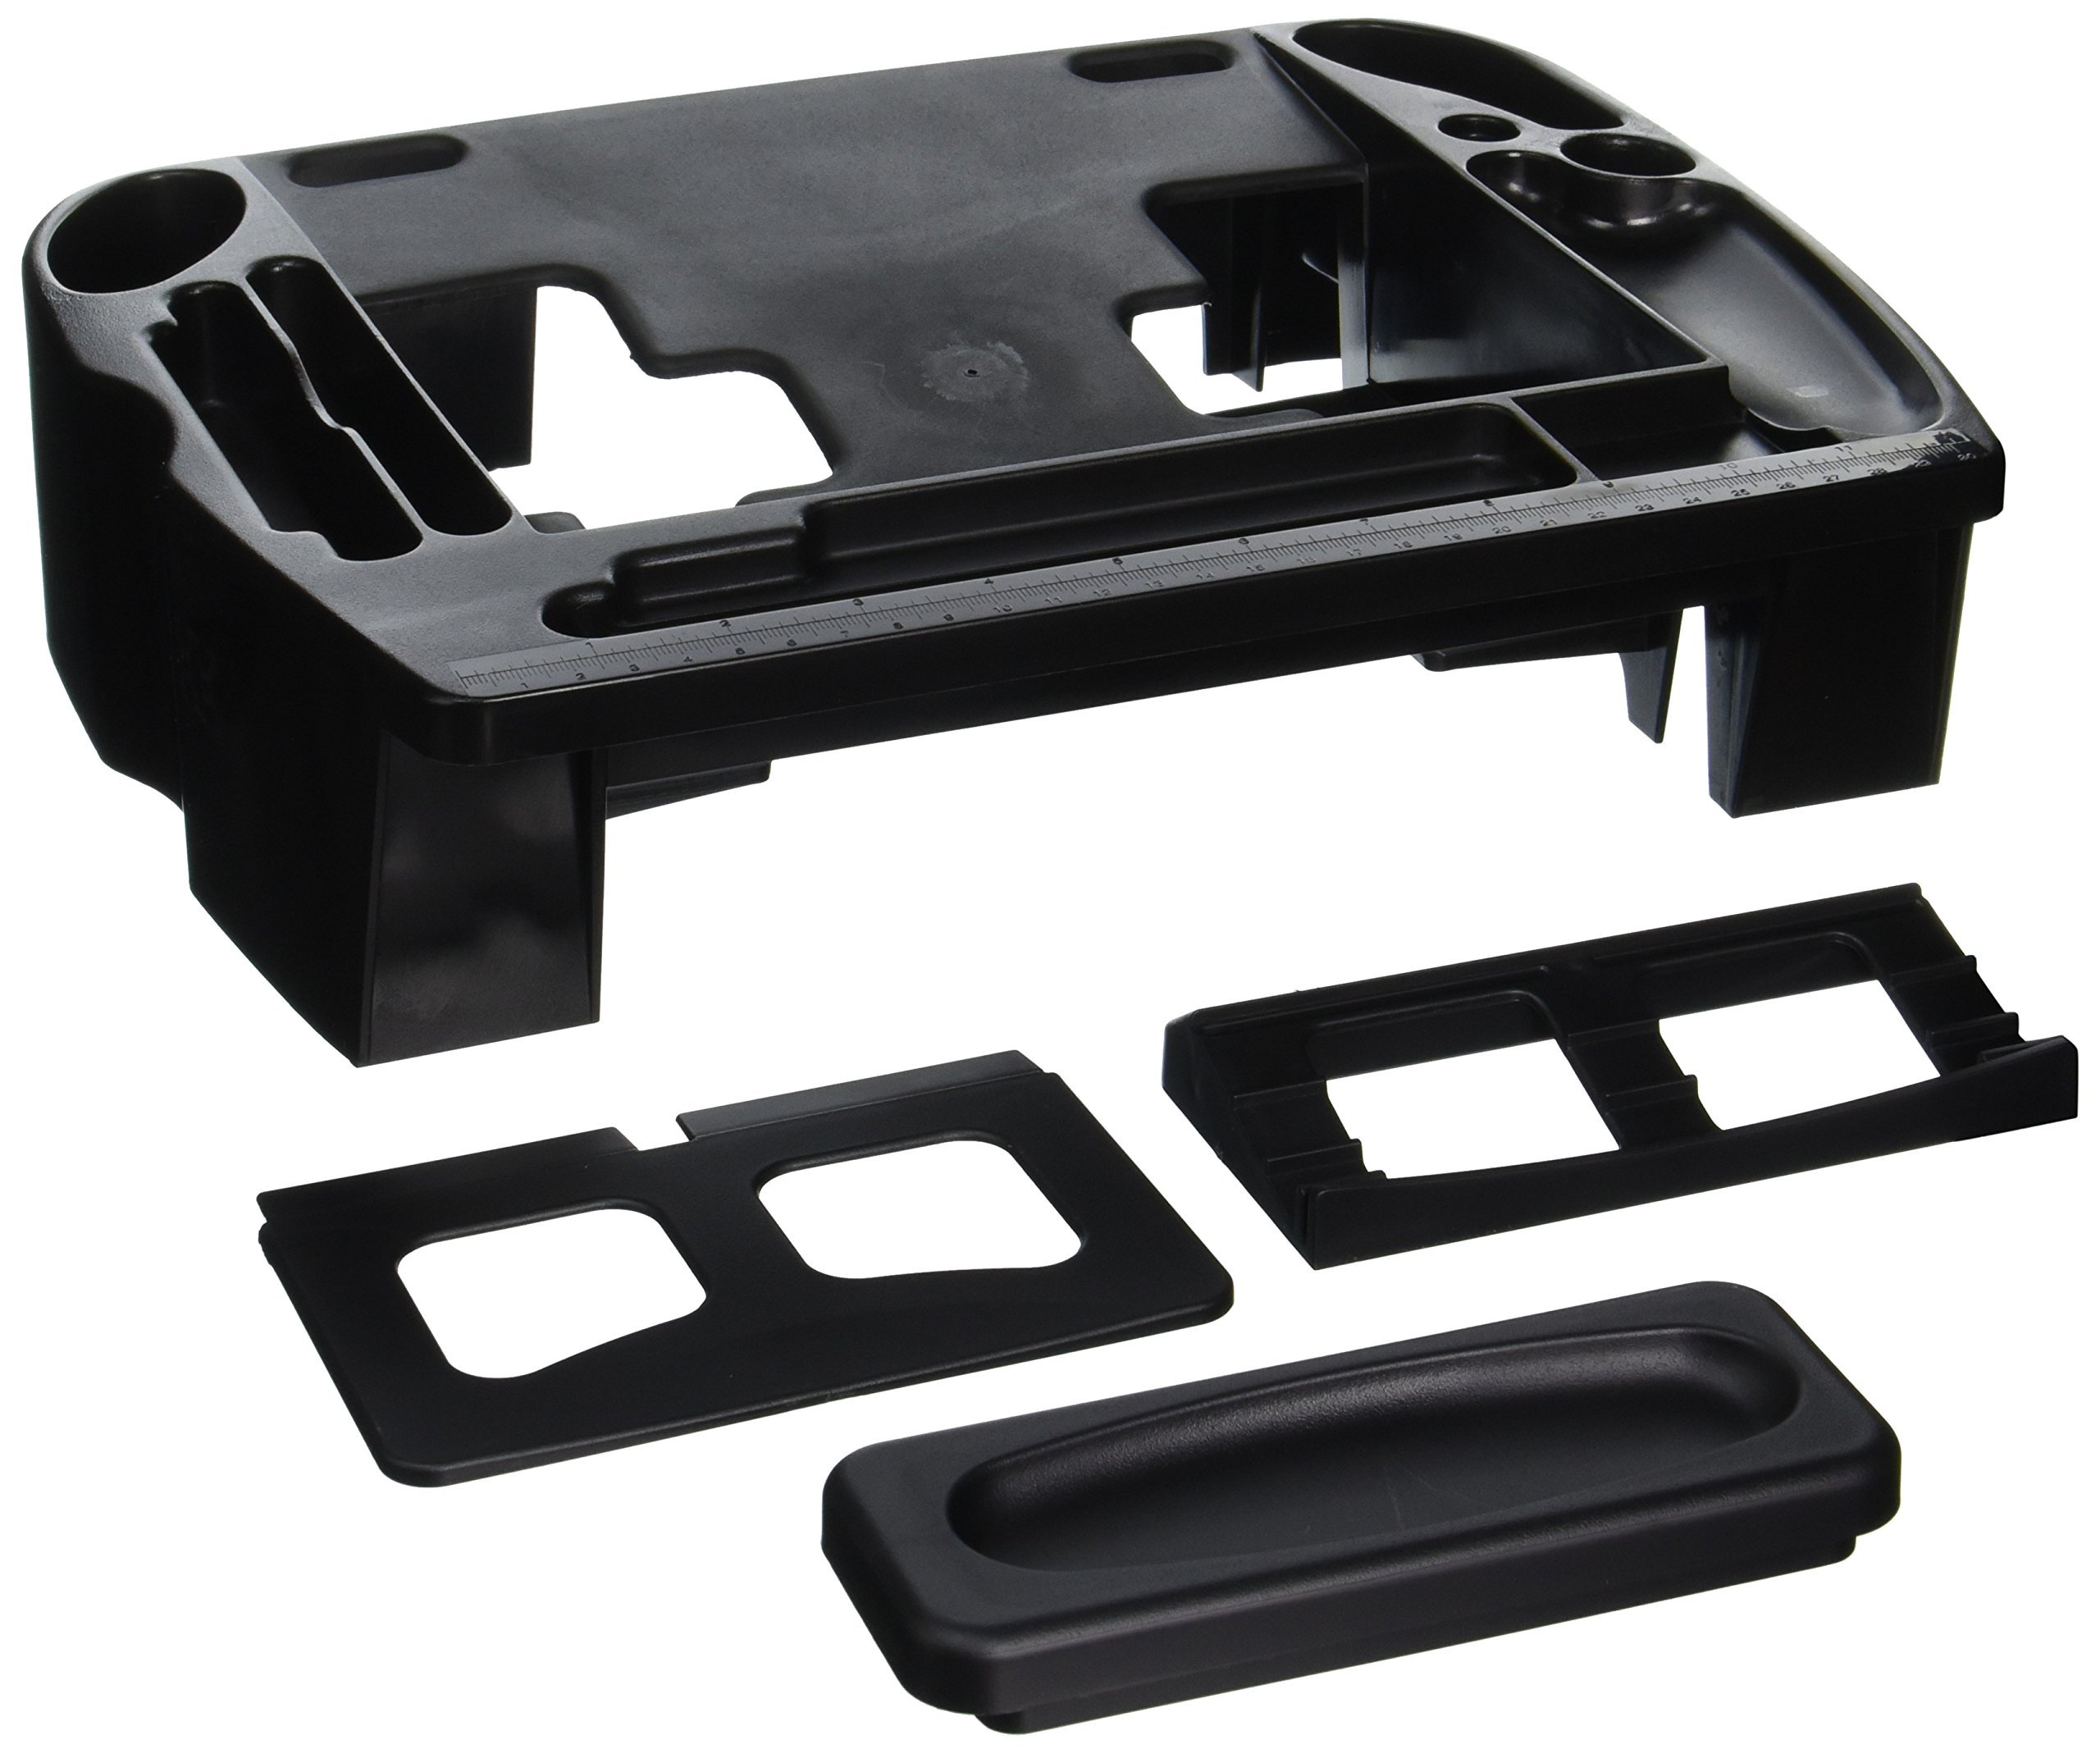 Compucessory Telephone Stand/Organizer, Black (CCS55200)